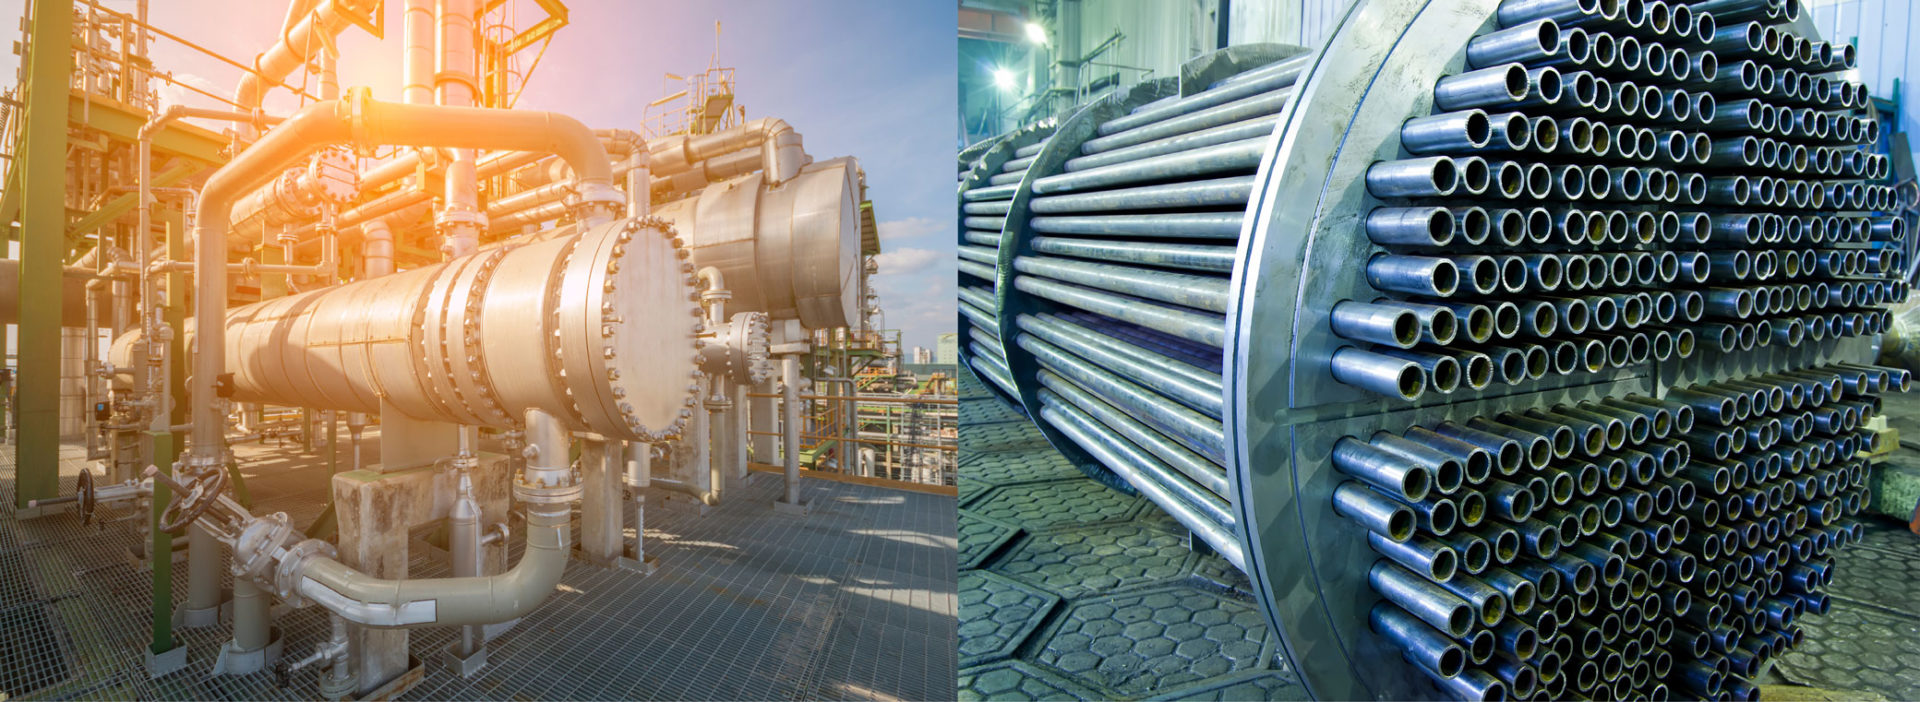 Figure 3: The shell-and-tube is a common heat exchanger type in industry processes, and as other heat exchanger types has a limited set of design features that can be altered to maximize efficiency for a given application